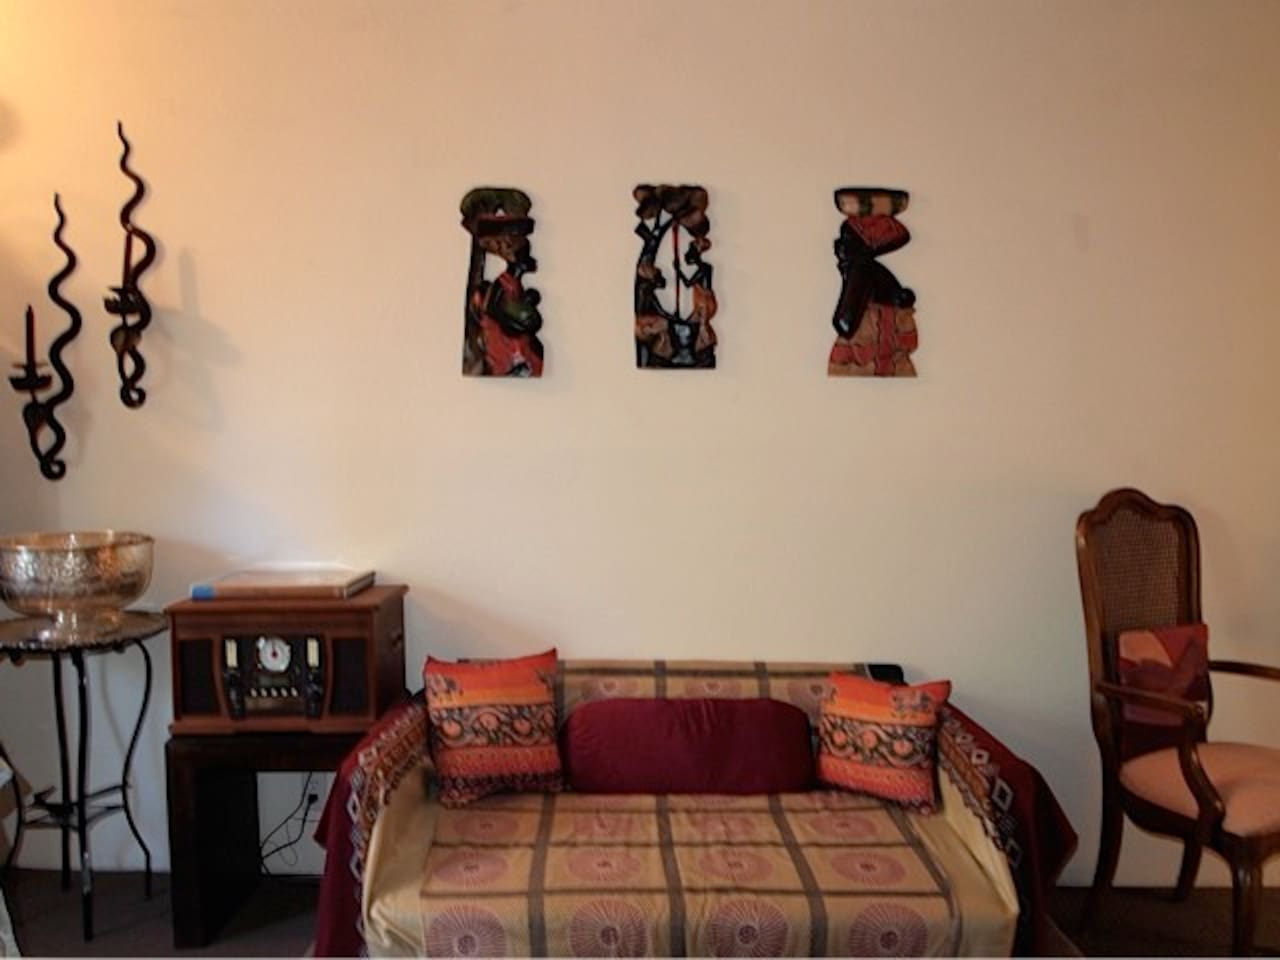 Couch and African artwork.